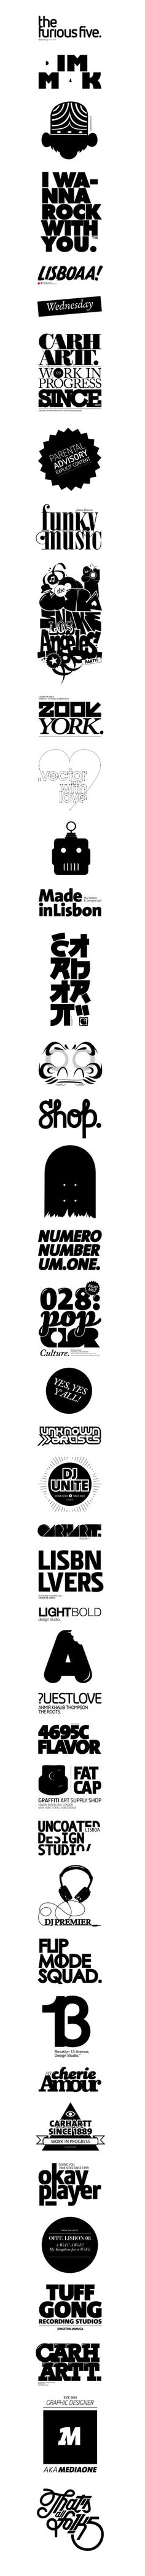 1º Round by André Beato, via Behance